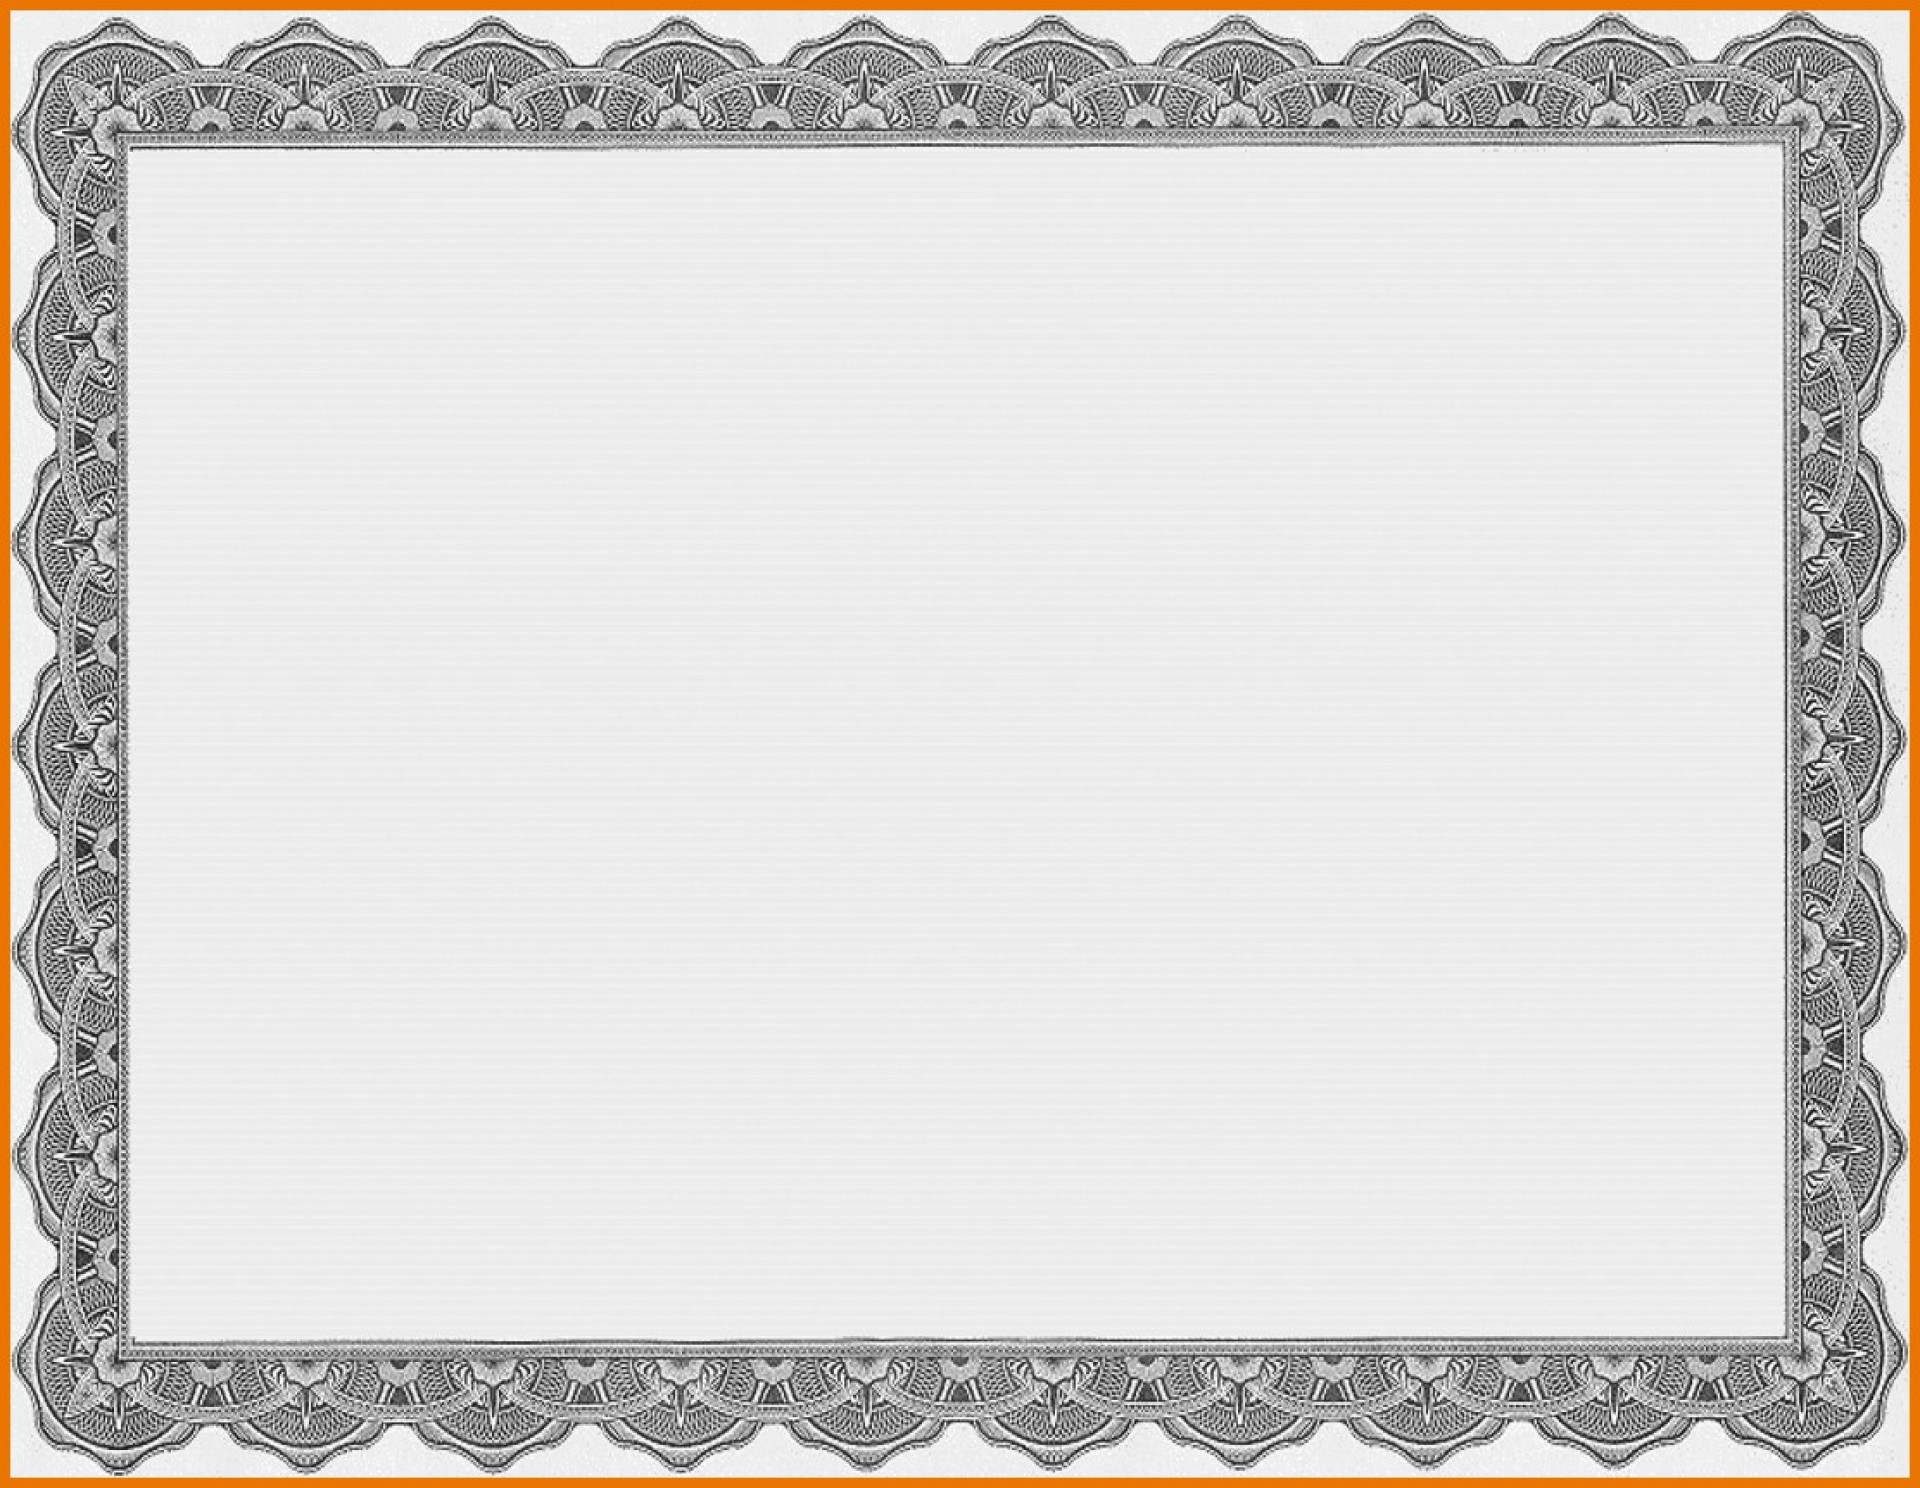 025 Kids Certificate Templates For Word Soccer Award Freekids Free - Free Printable Soccer Certificate Templates